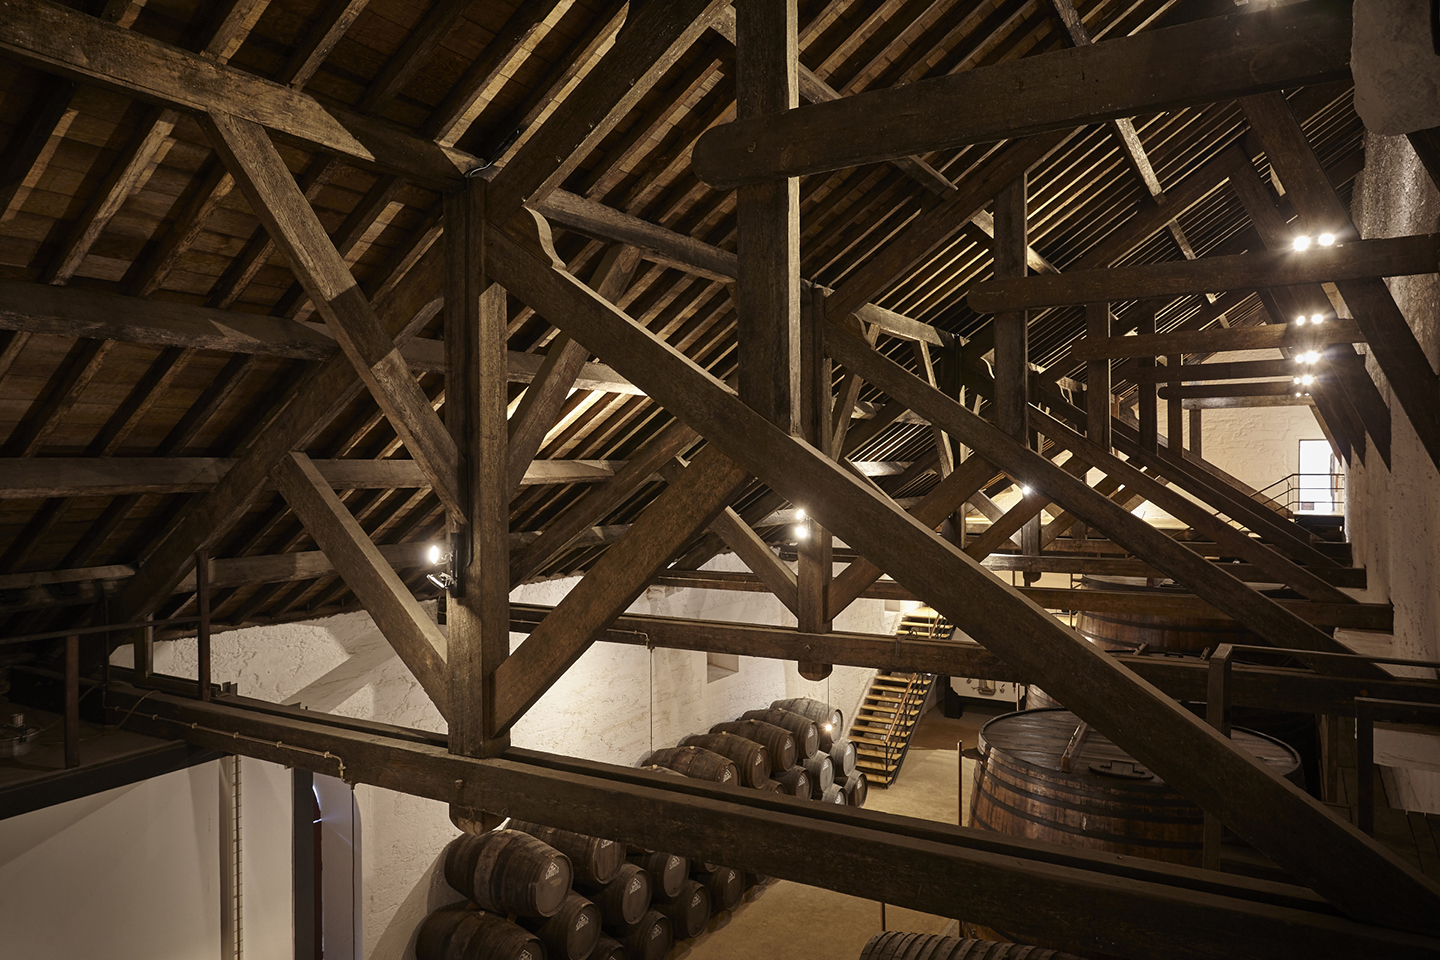 The ingenious system of beams and rafters which support the massive roof